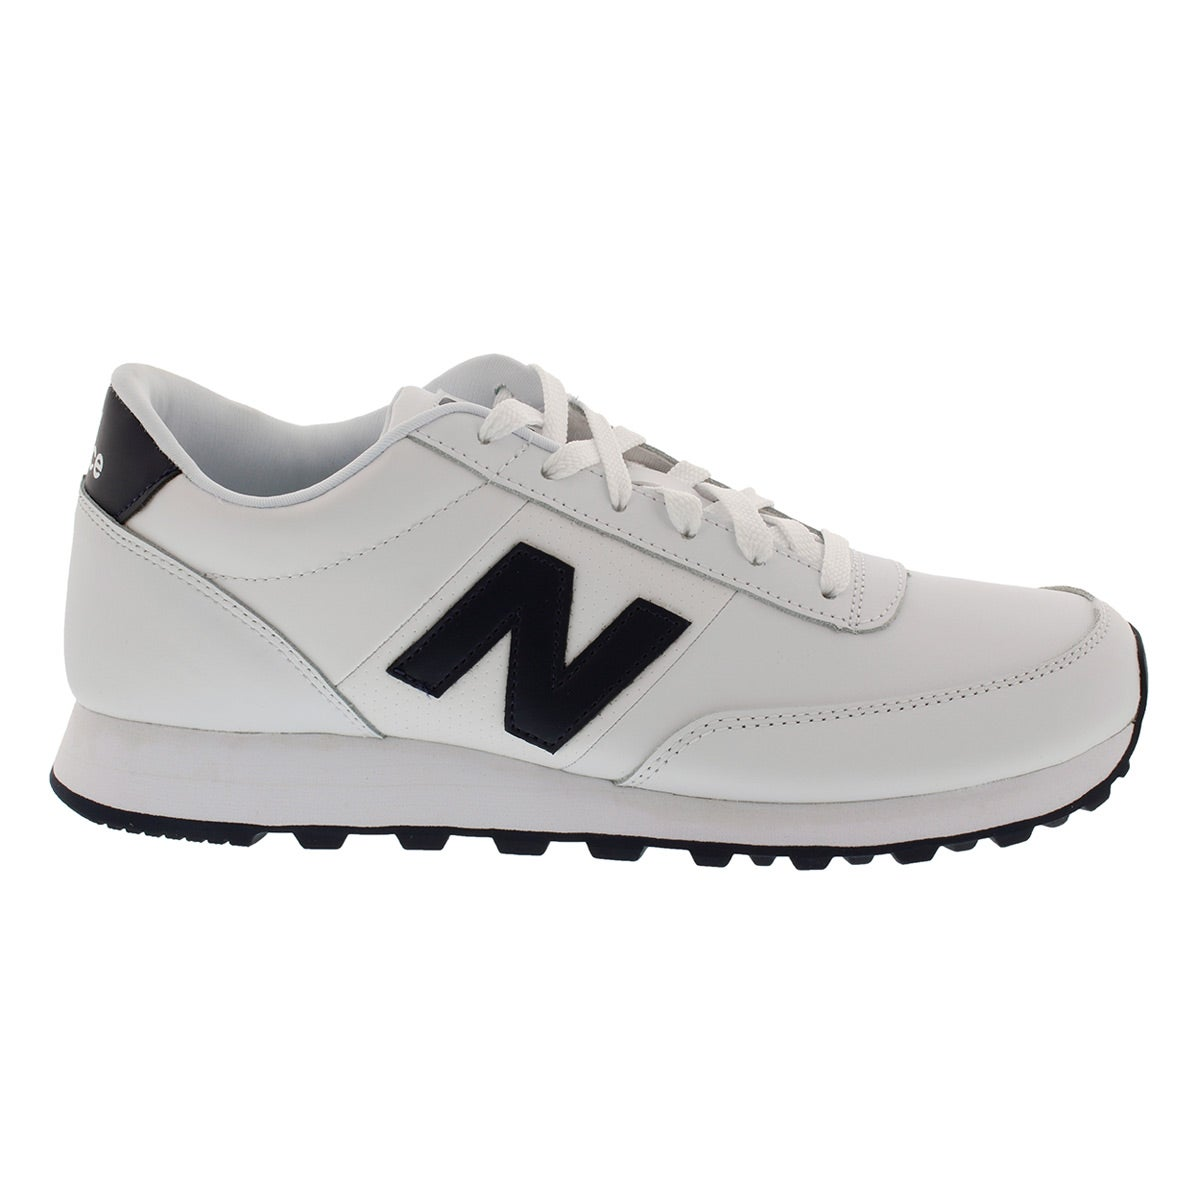 Mns 501 white/navy lace up sneaker